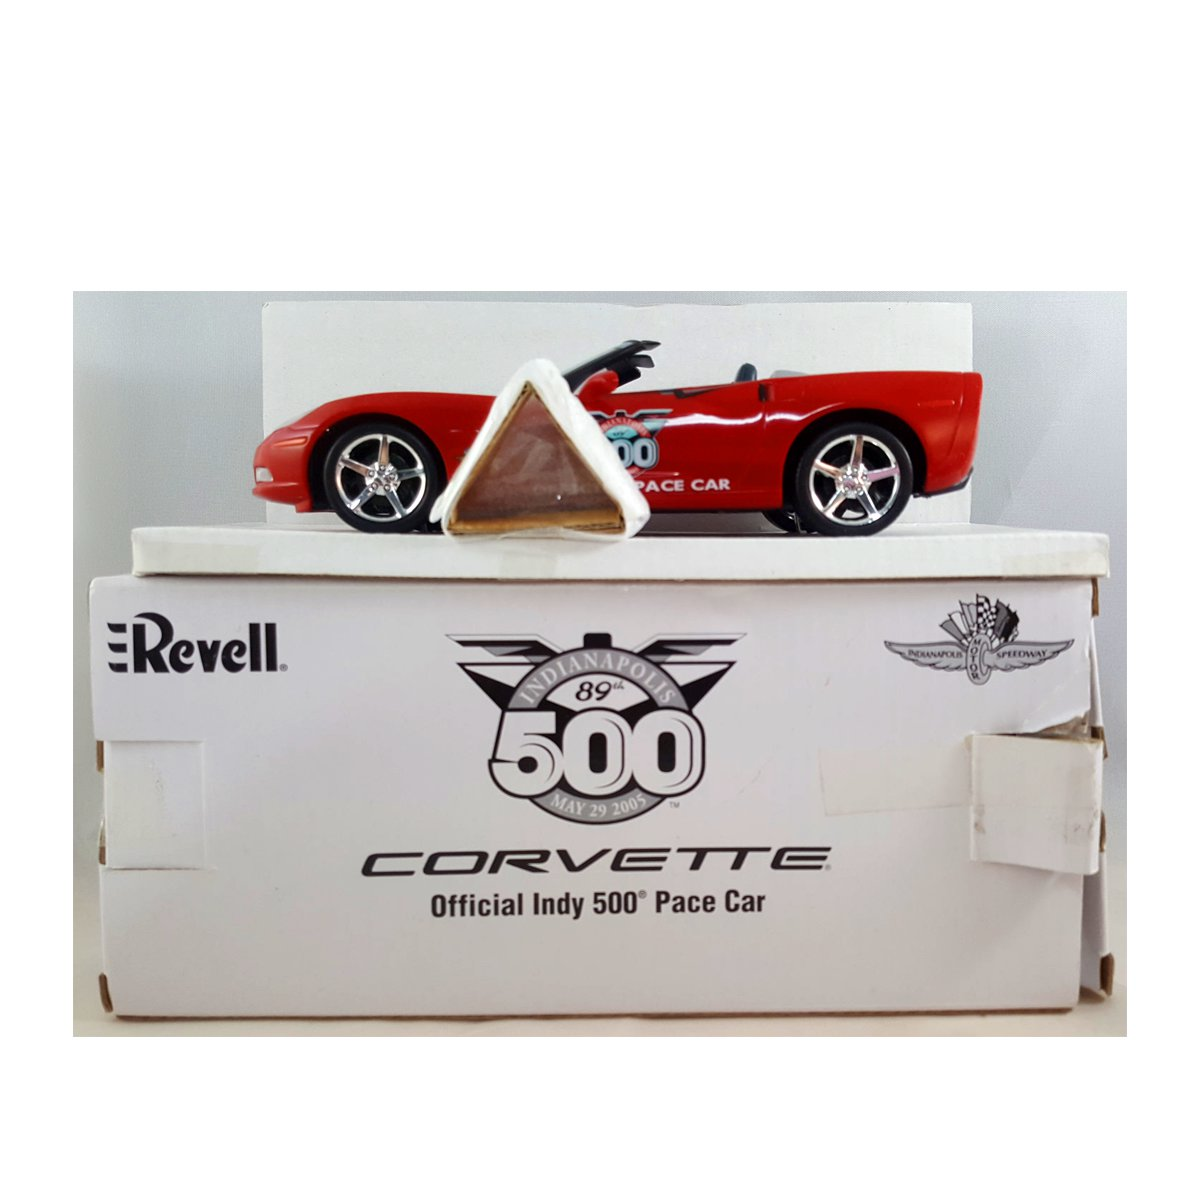 Revell 2005 Red Corvette Official Indy Pace Car Promo Model 1:25 Scale No. 85-0961 by Revell